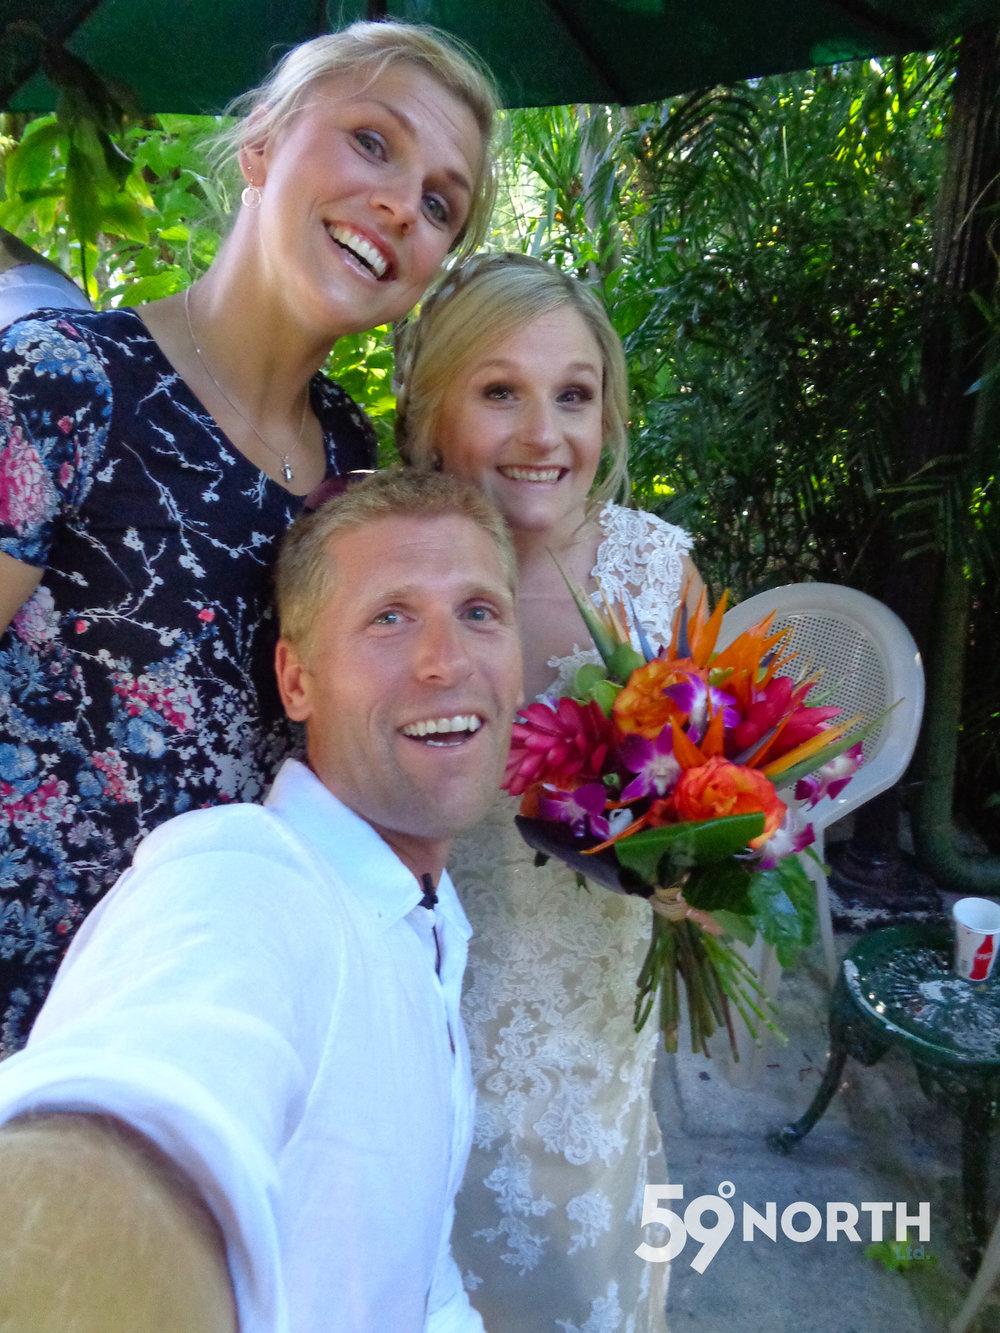 Andy's sister Kaitie got married to her Kevin in Key West. April 2016